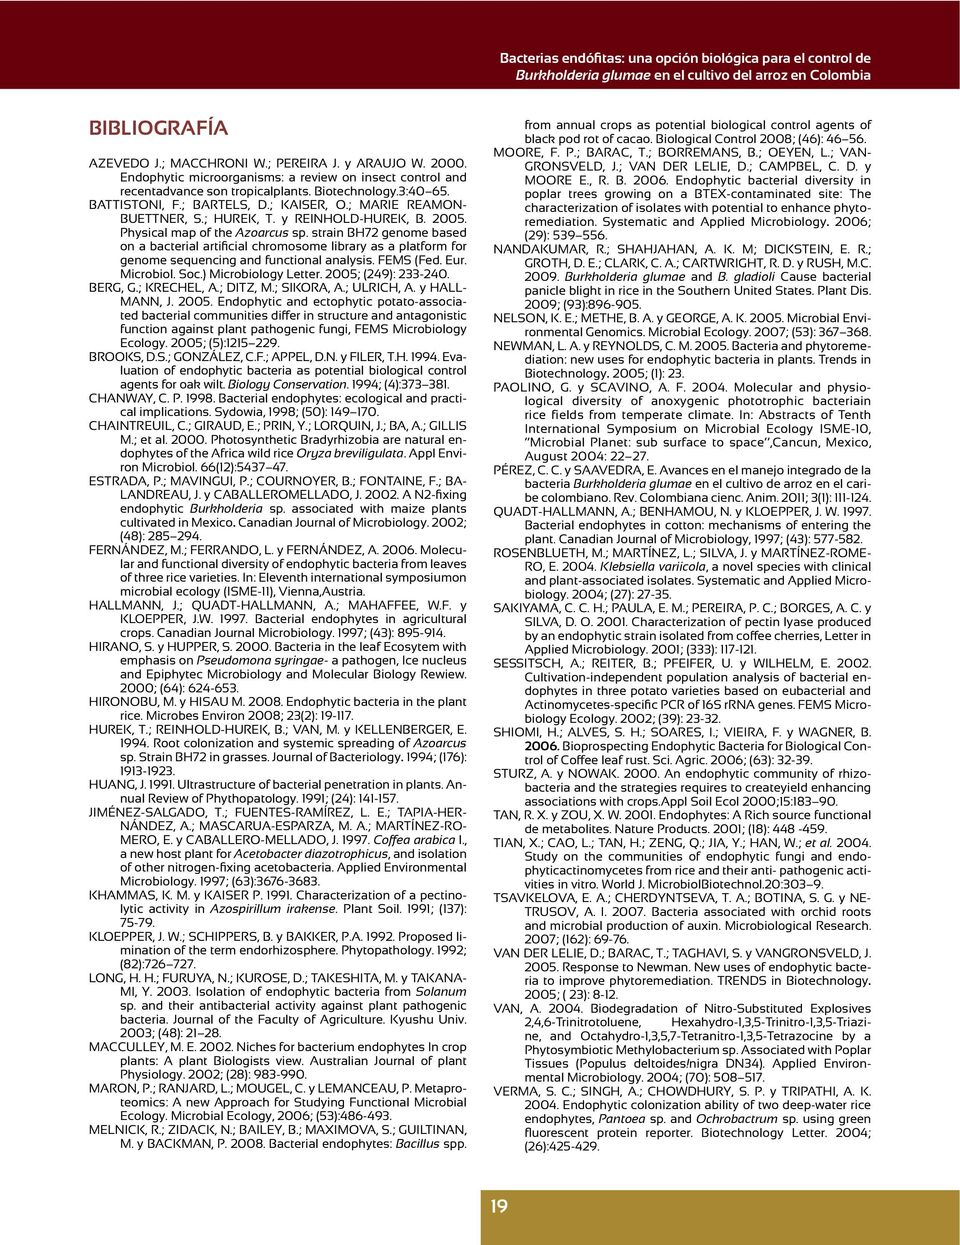 strain BH72 genome based genome sequencing and functional analysis. FEMS (Fed. Eur. Microbiol. Soc.) Microbiology Letter. 2005;